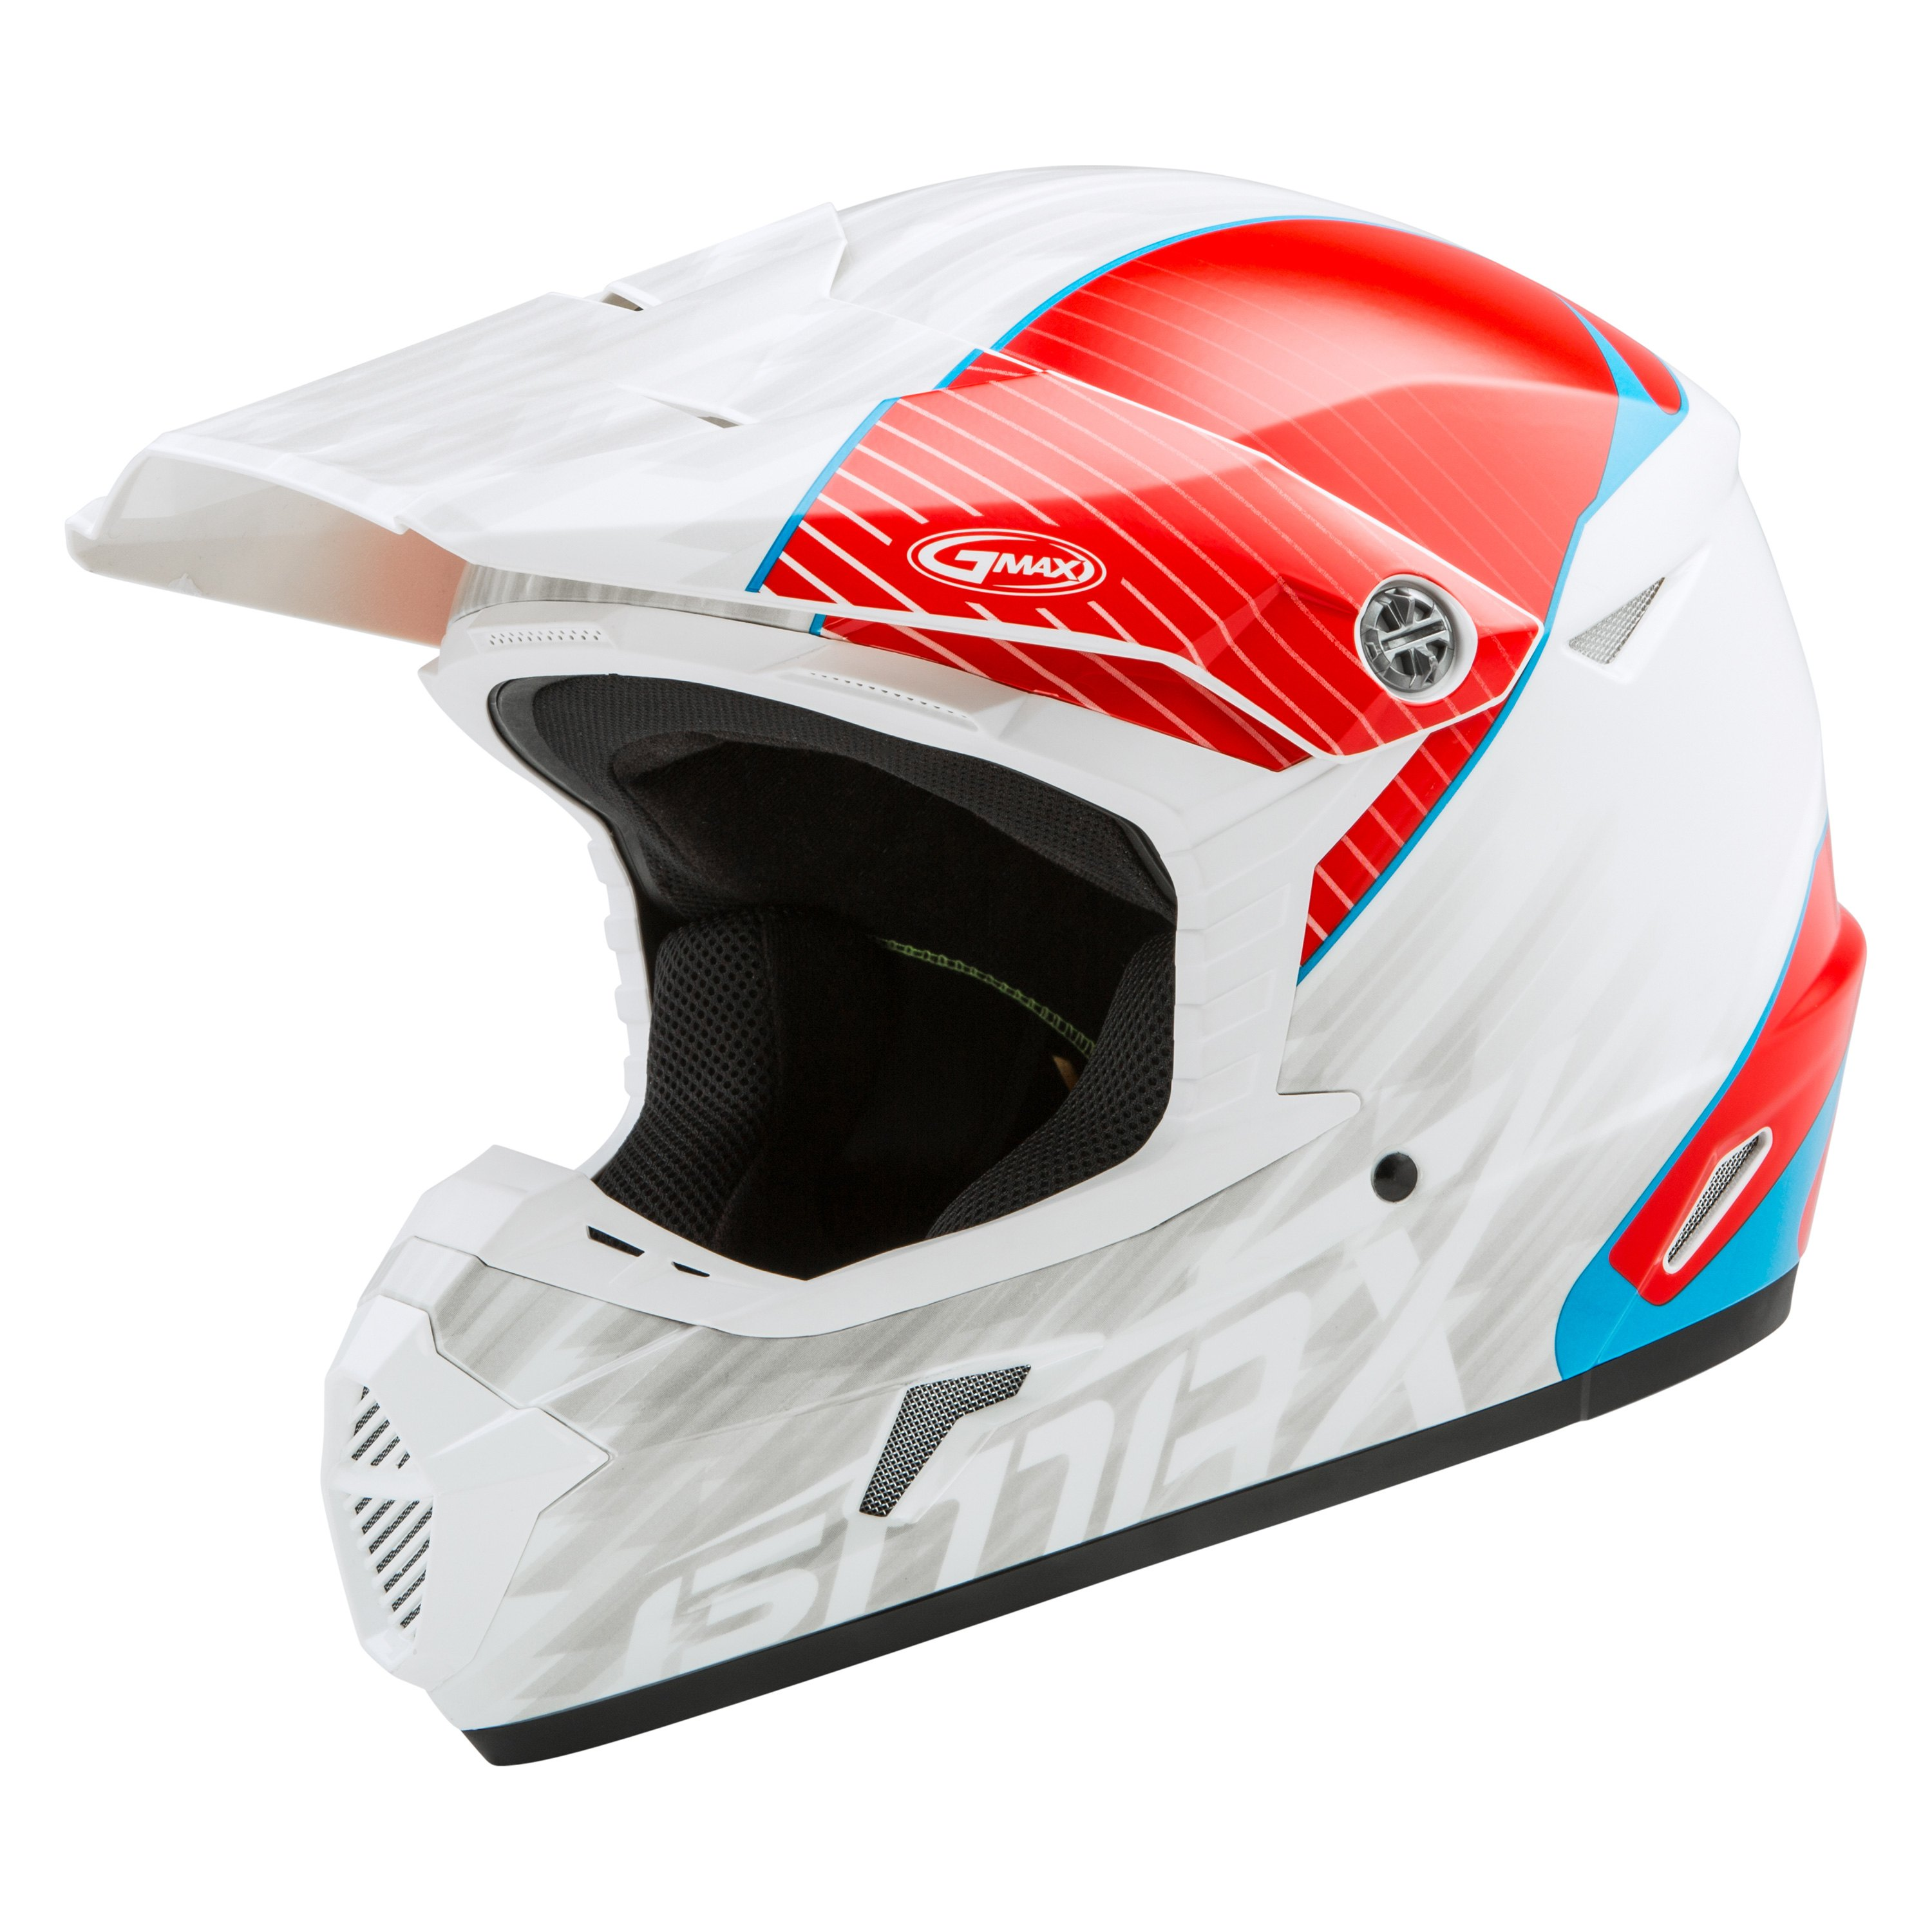 Gmax 174 G3463010 Mx 46y Offroad Colfax Small White Red